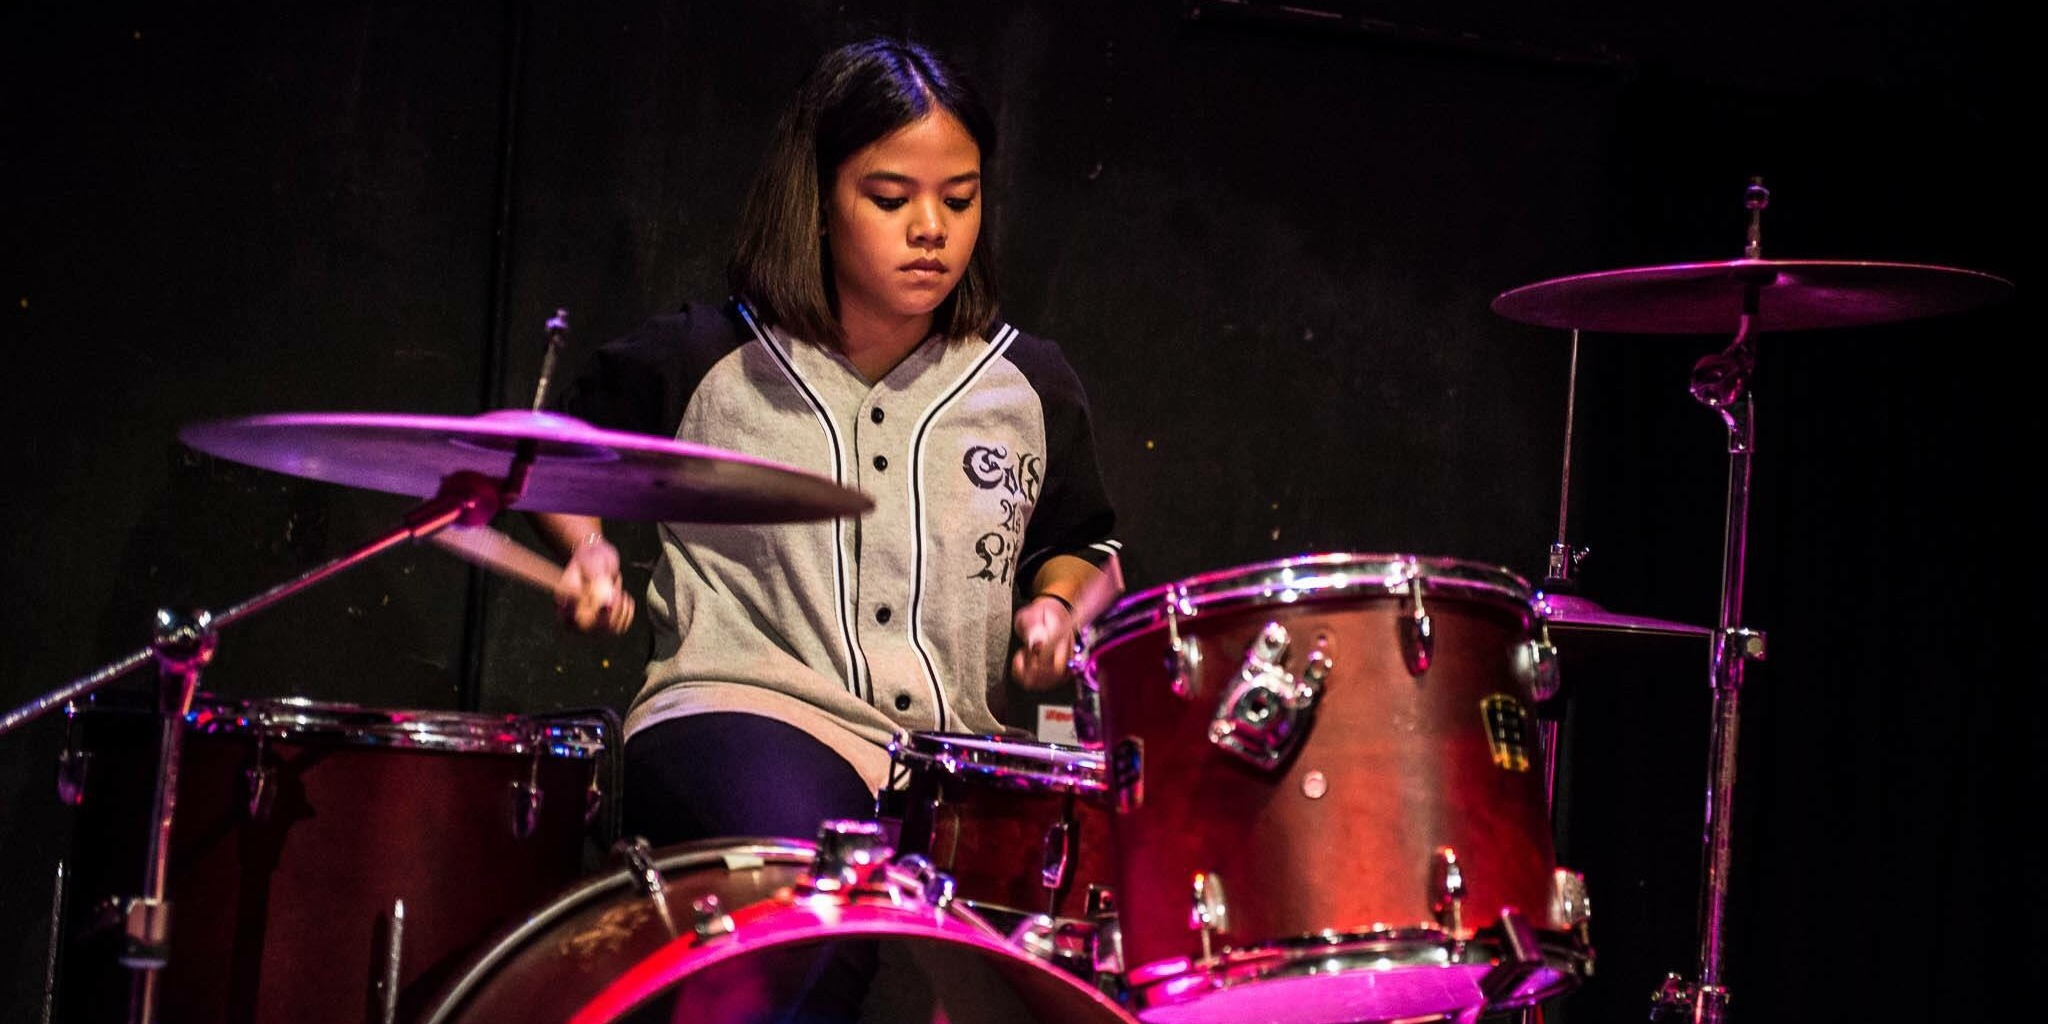 We speak to some of the female drummers in Singapore who are killing it